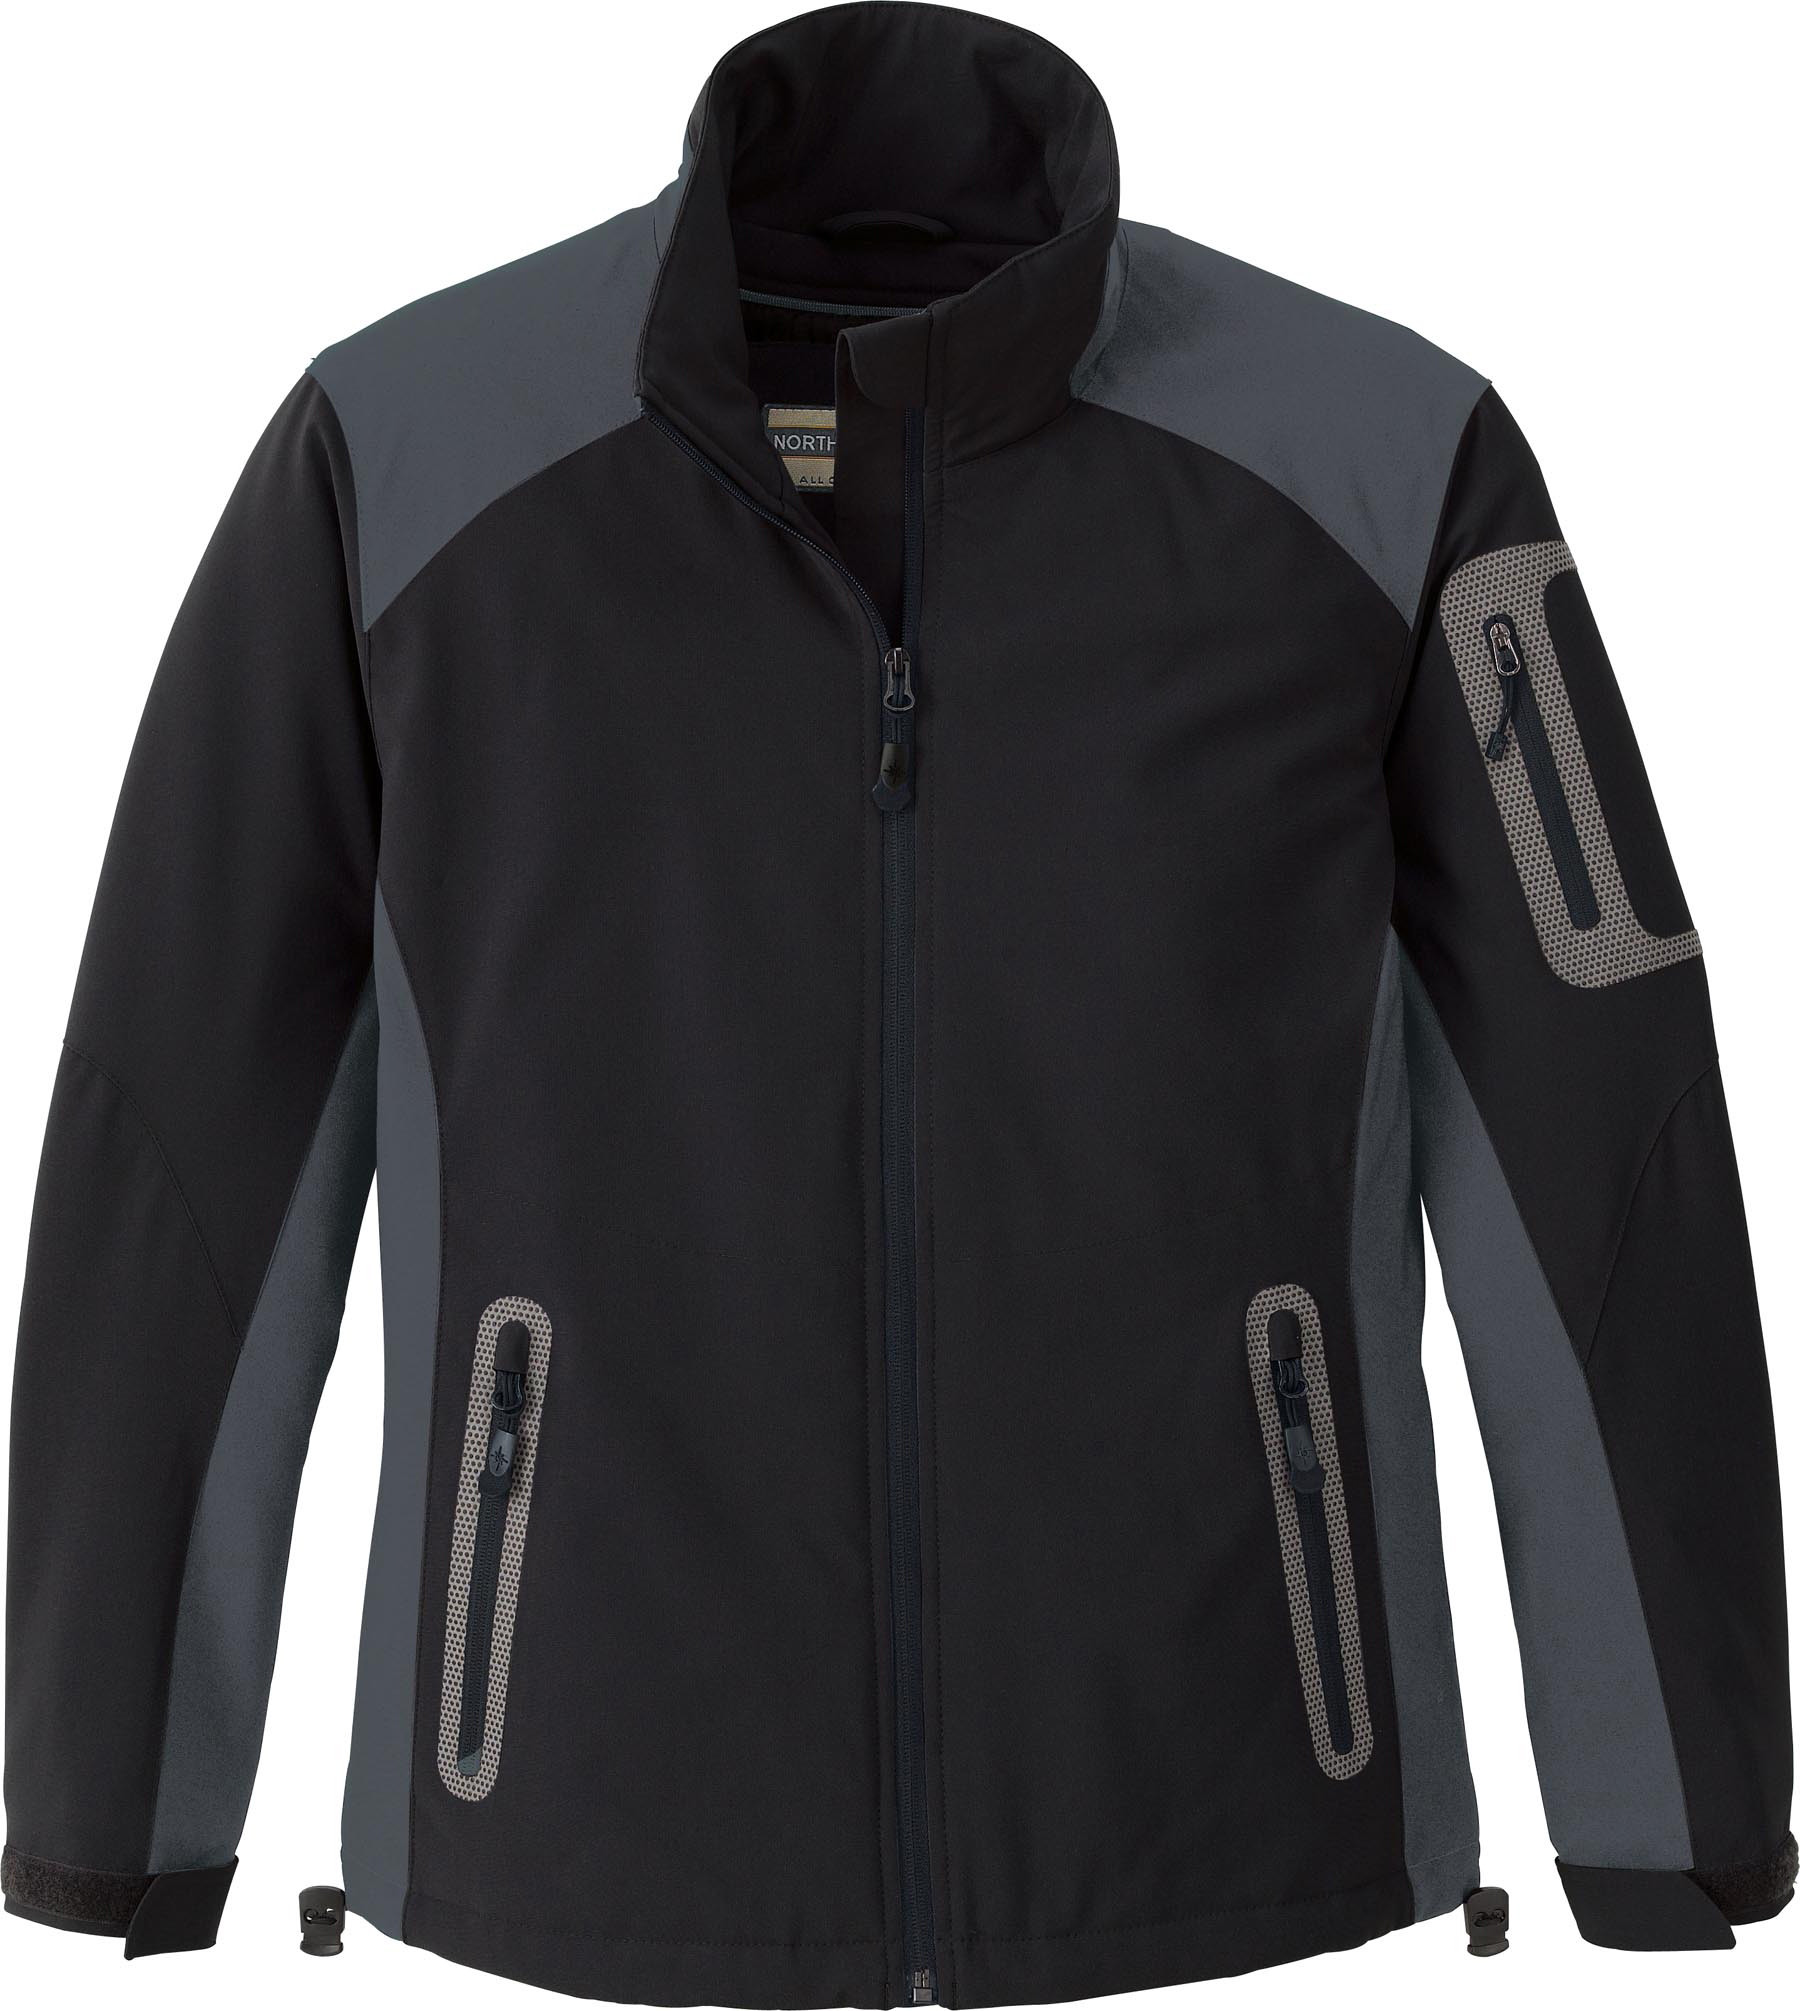 Ash City Performance Jackets 78070 - Ladies' Insulated Performance Stretch Jacket